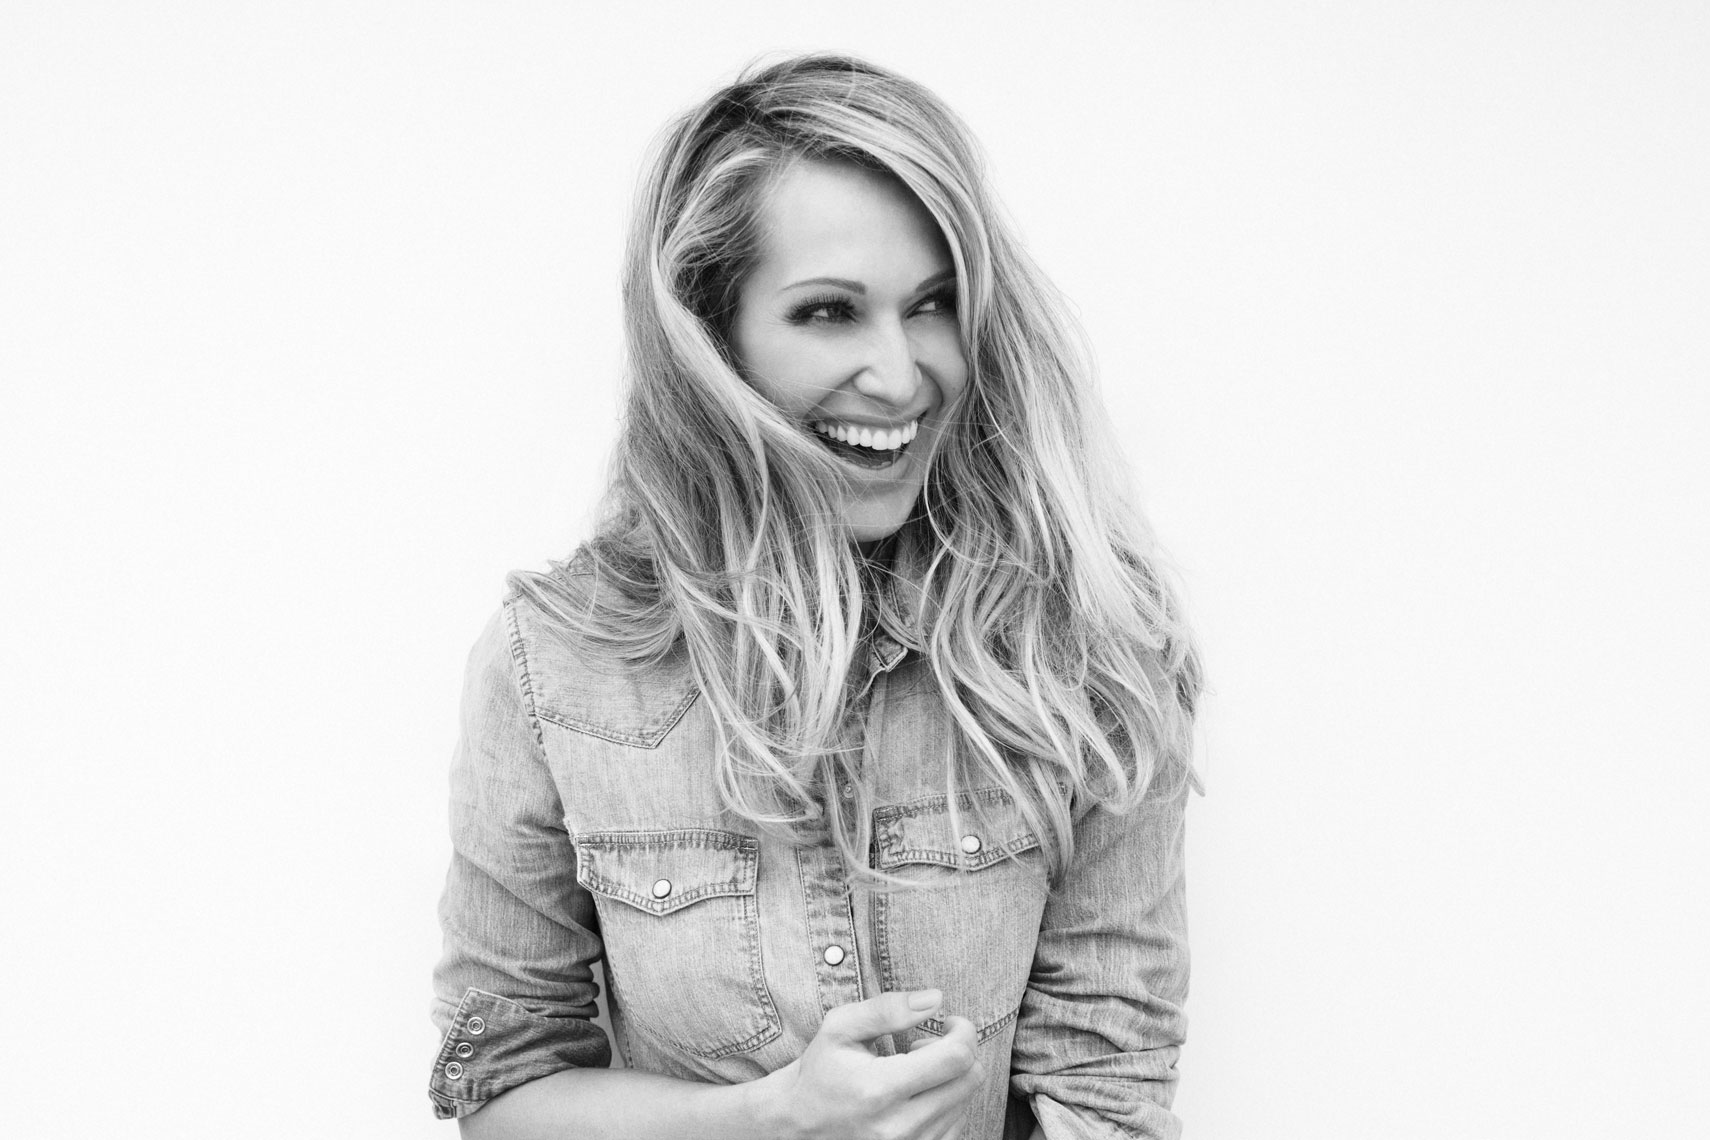 Erika Heynatz laughing in a black and white portrait and a denim shirt